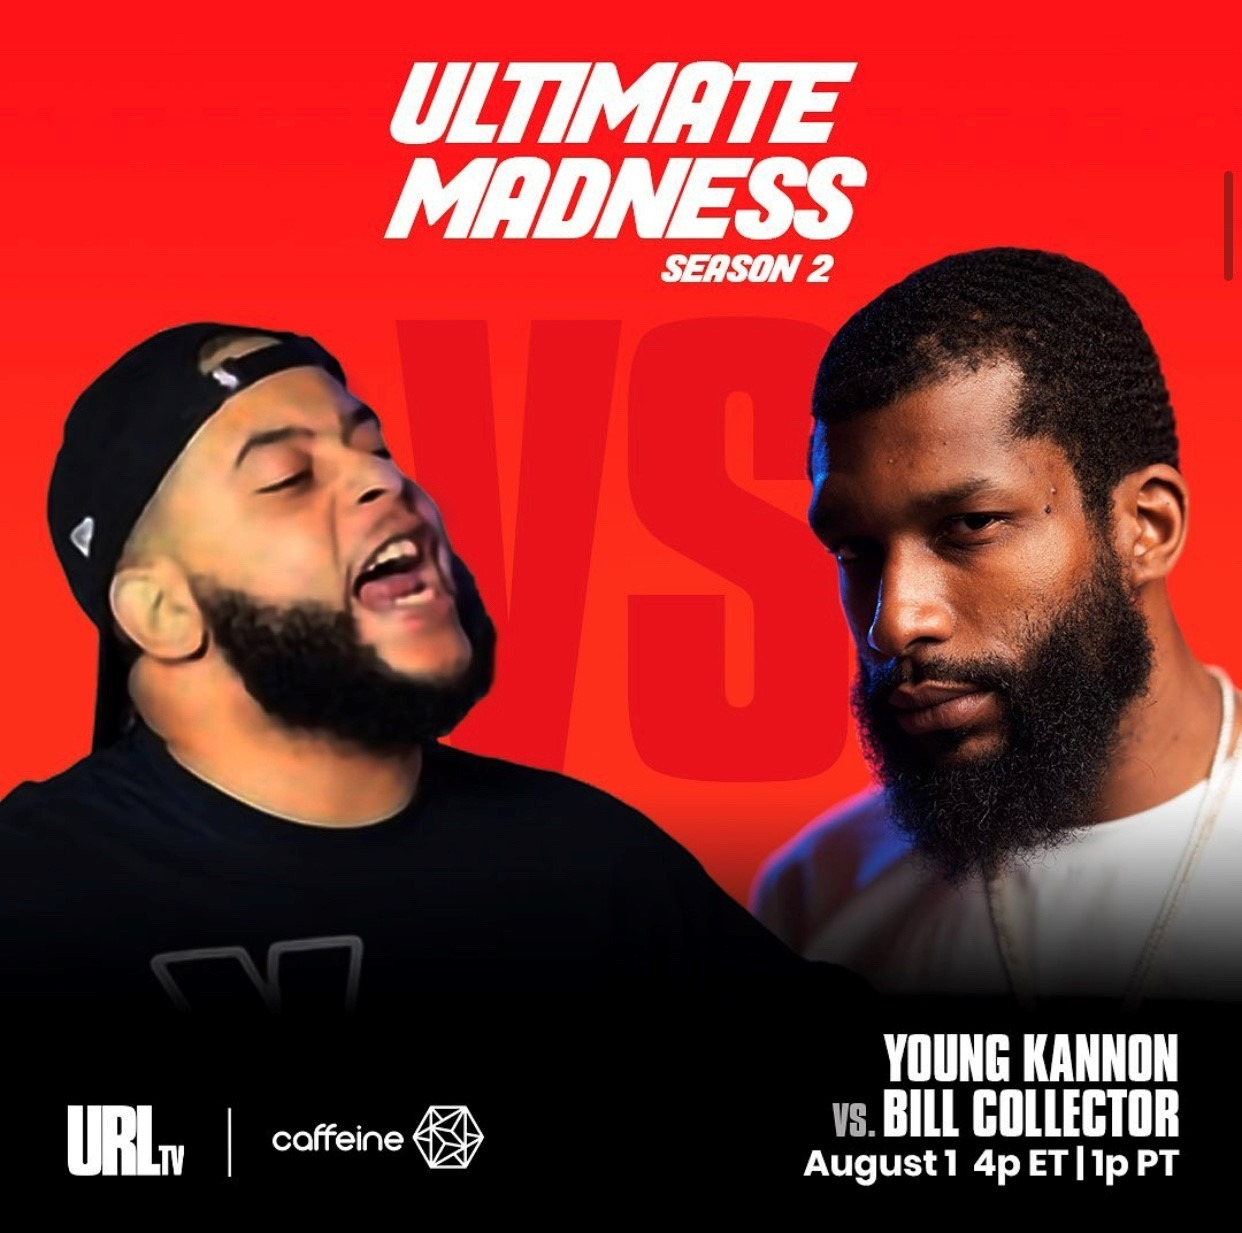 ultimate madness season 2